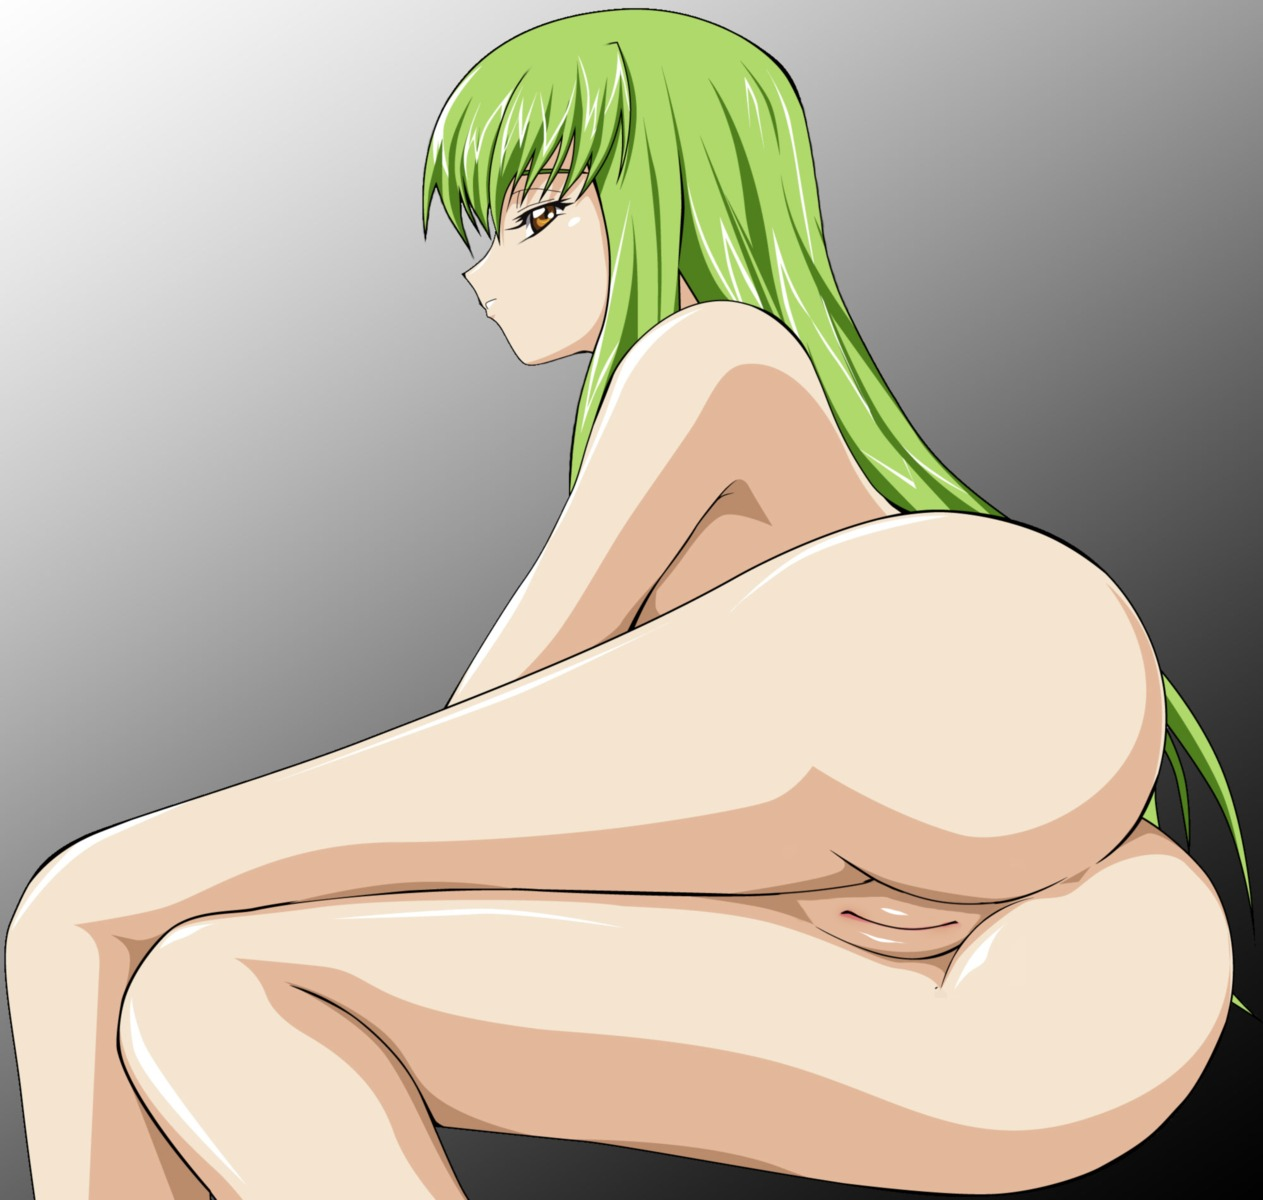 ass c.c. code_geass danna naked pussy uncensored